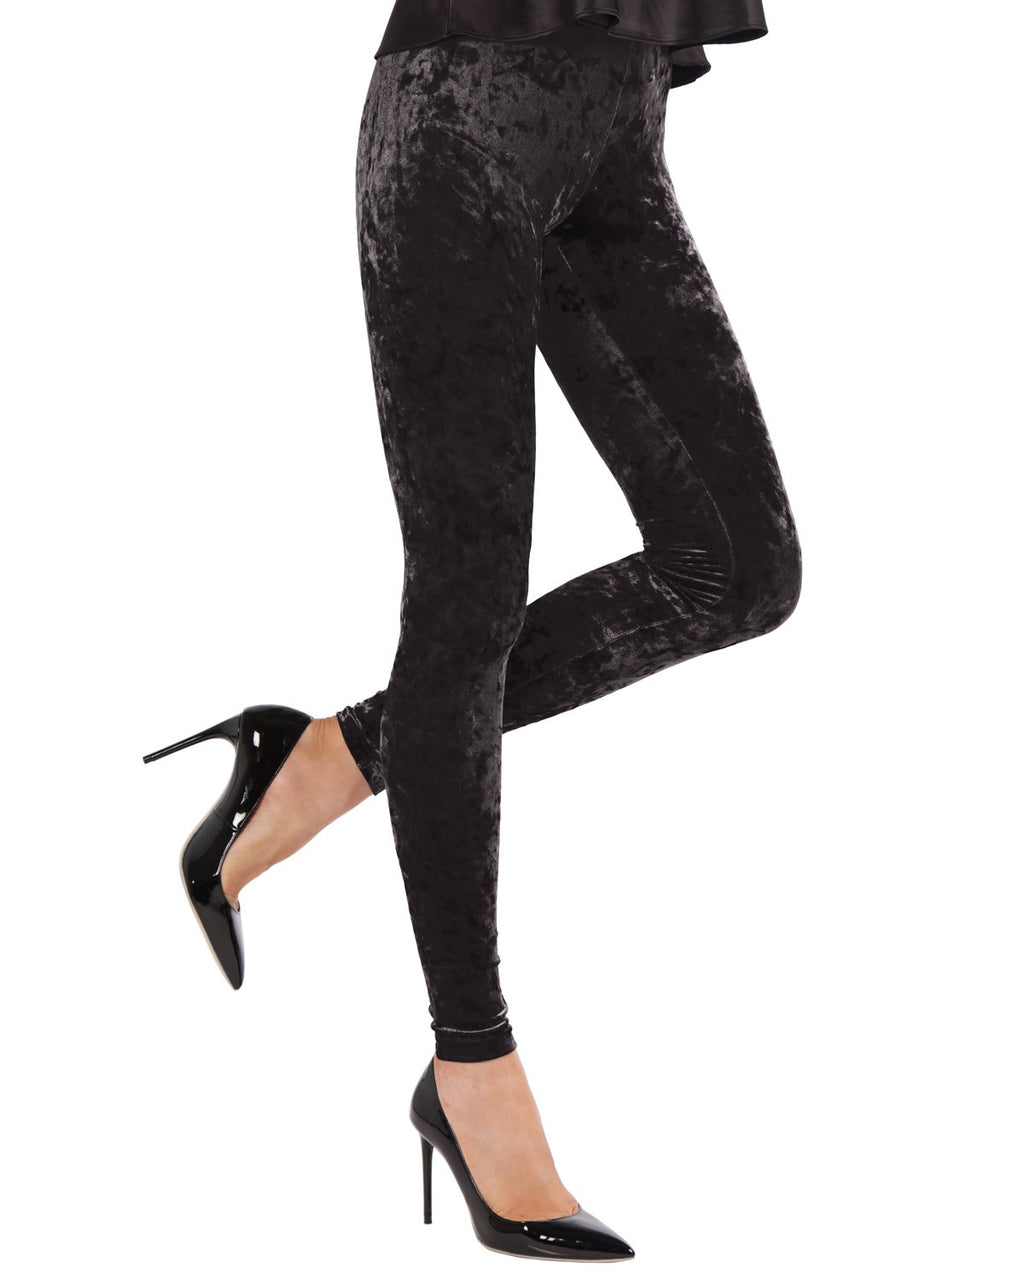 Memoi Black Crushed Velvet Leggings | MeMoi Women's Premium Velvet Leggings